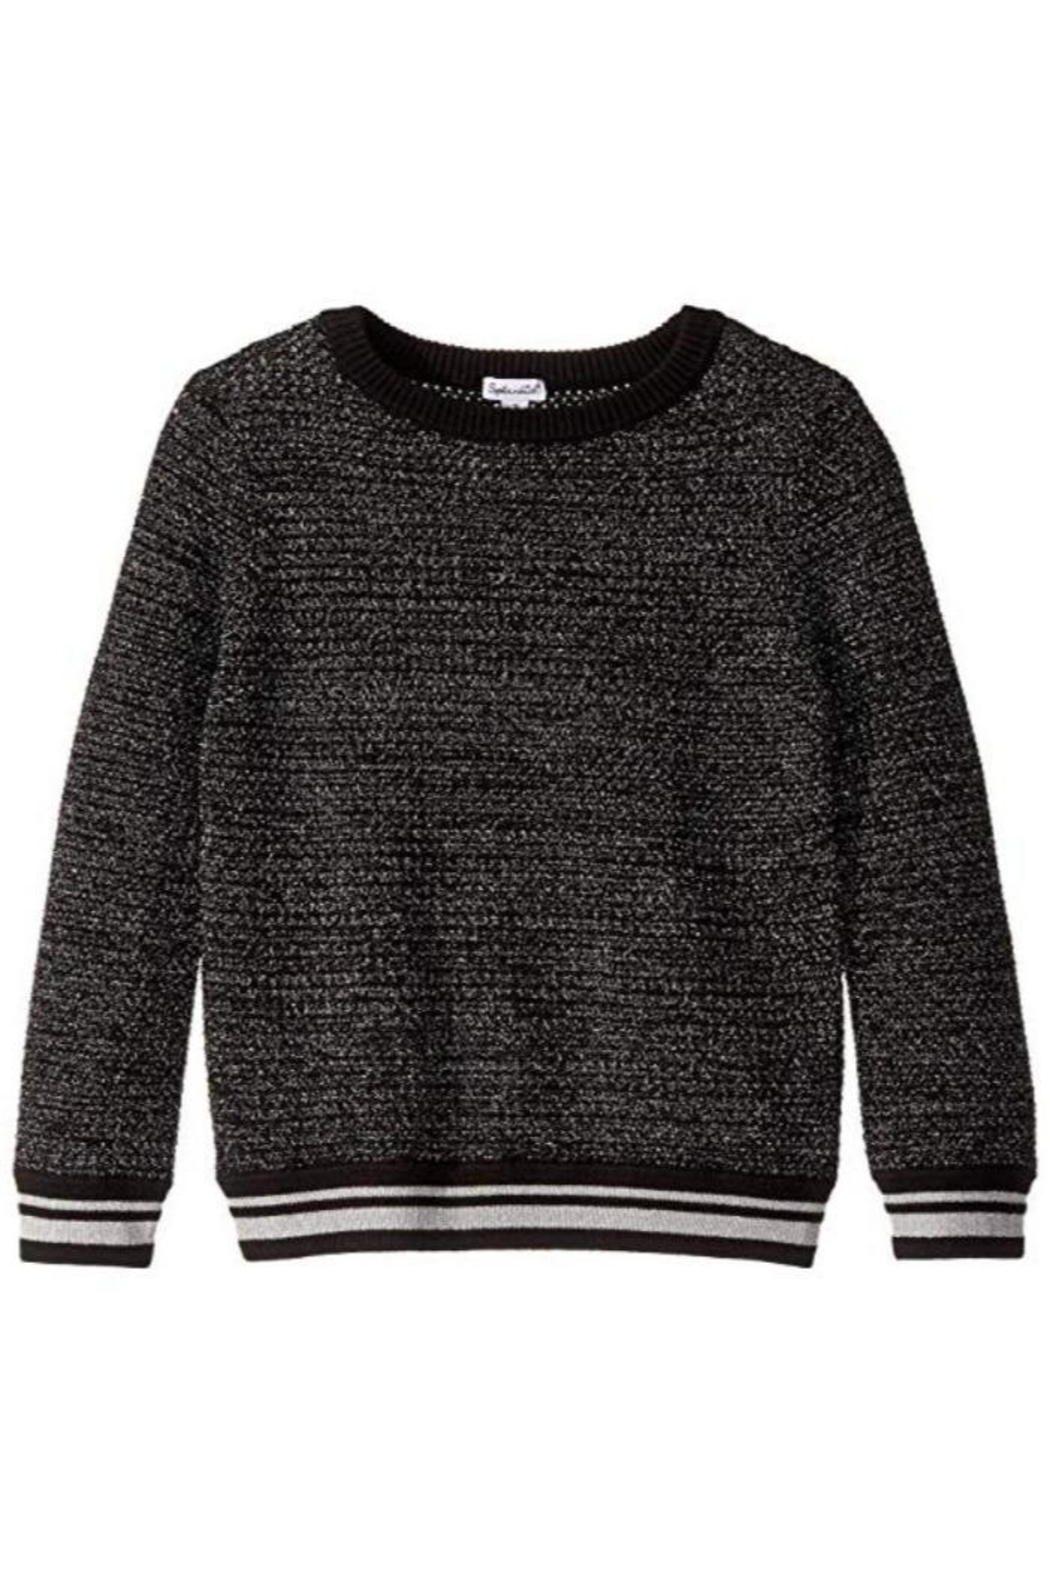 Splendid Lurex Knit Top - Main Image